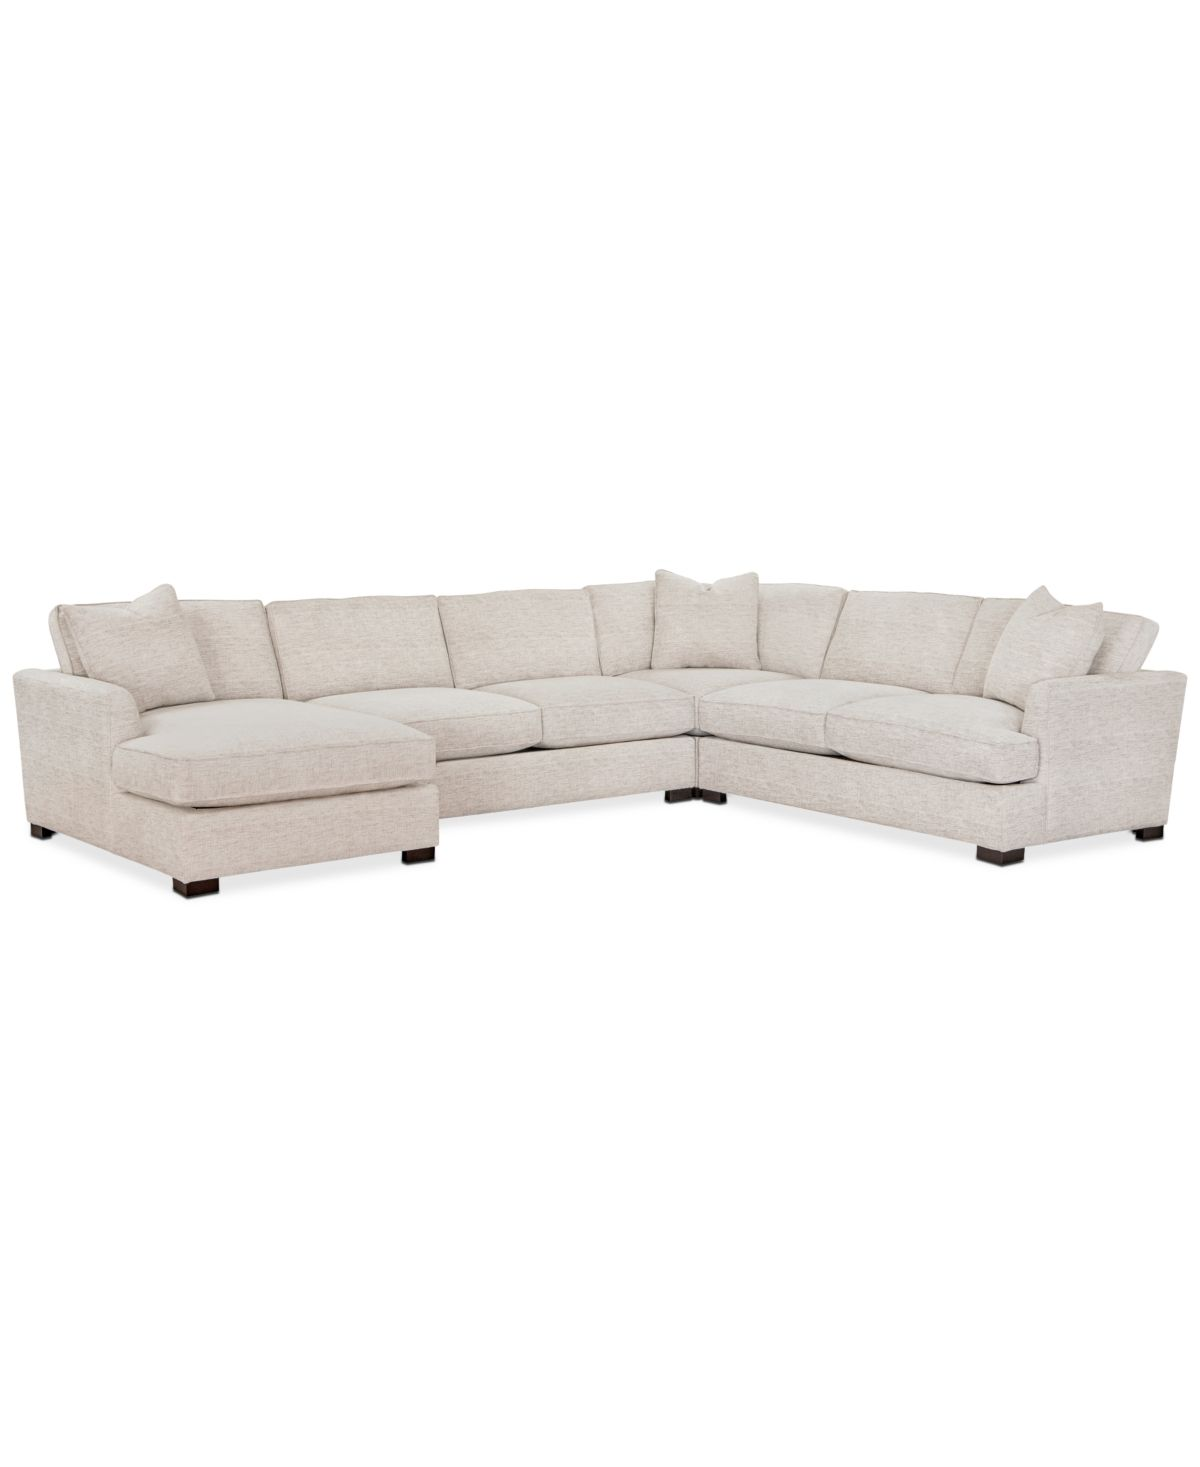 Furniture Juliam 4 Pc Fabric Chaise Sectional Sofa Created For